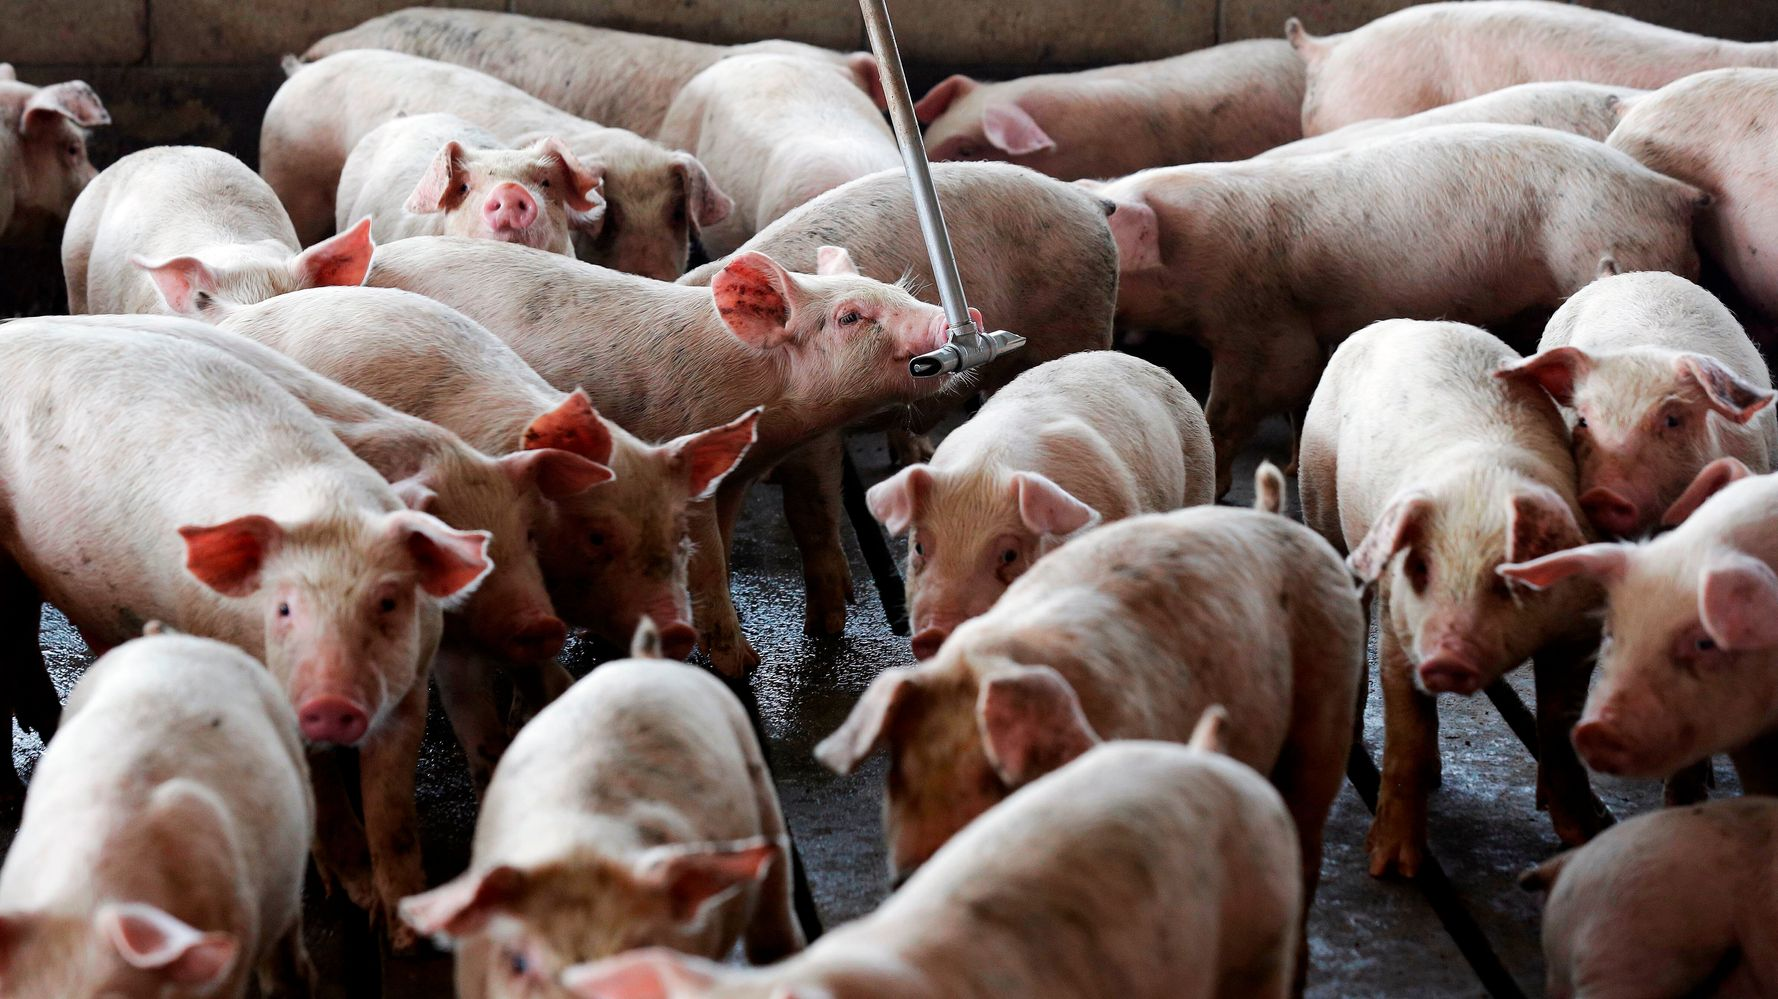 Court Upholds Verdict That Smithfield Must Pay For Making Life Near Hog Operation Miserable